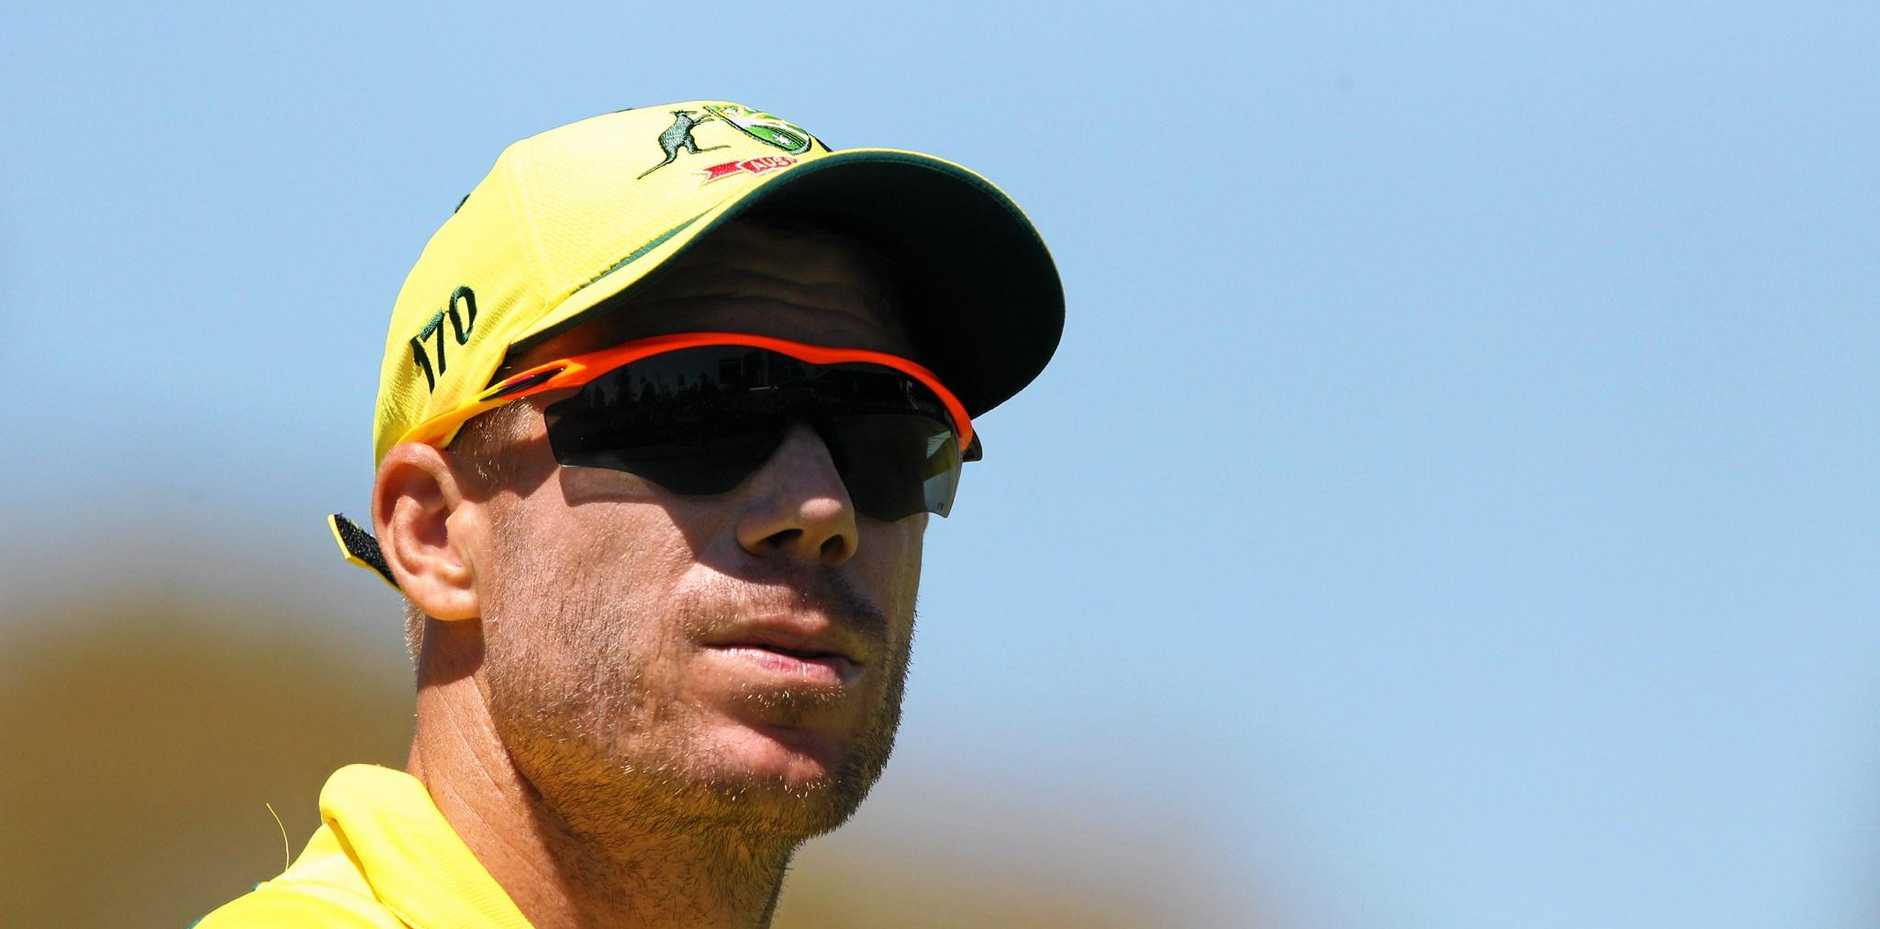 David Warner of Australia in the field during a one-day international against Pakistan at the WACA in January.